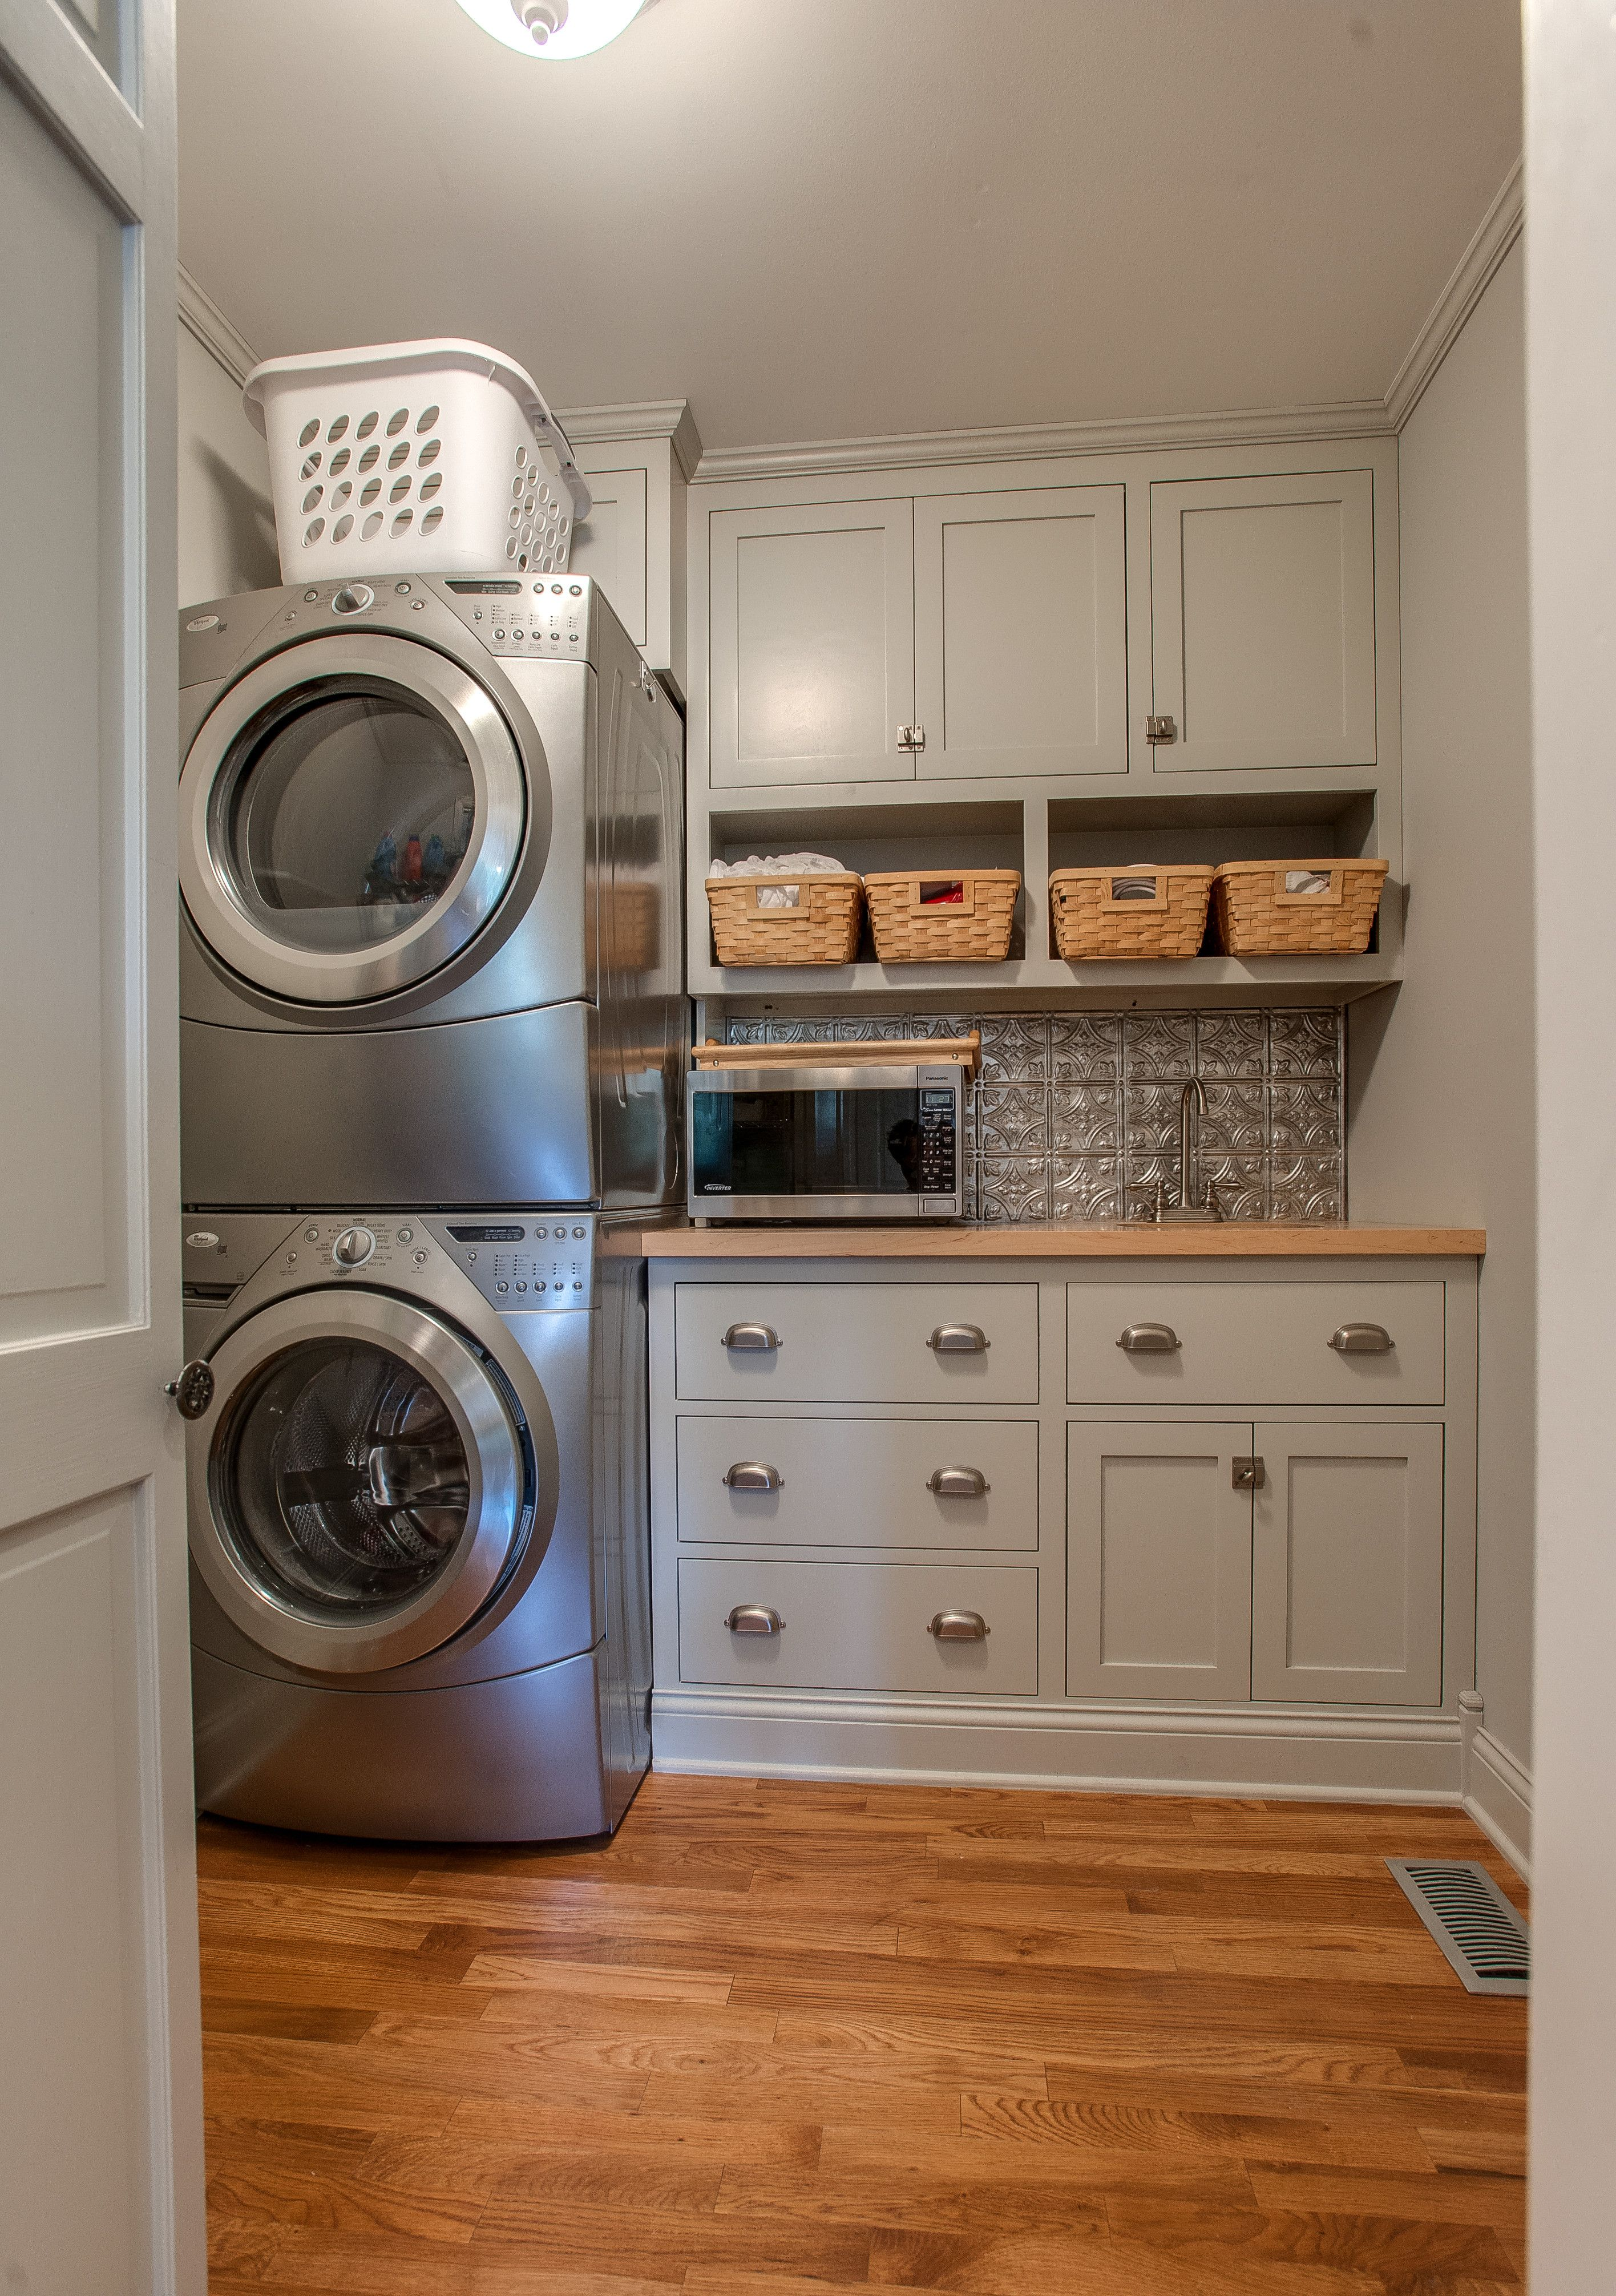 Laundry Room By Lindhem Laundry Room Design Laundry Room Home Appliances